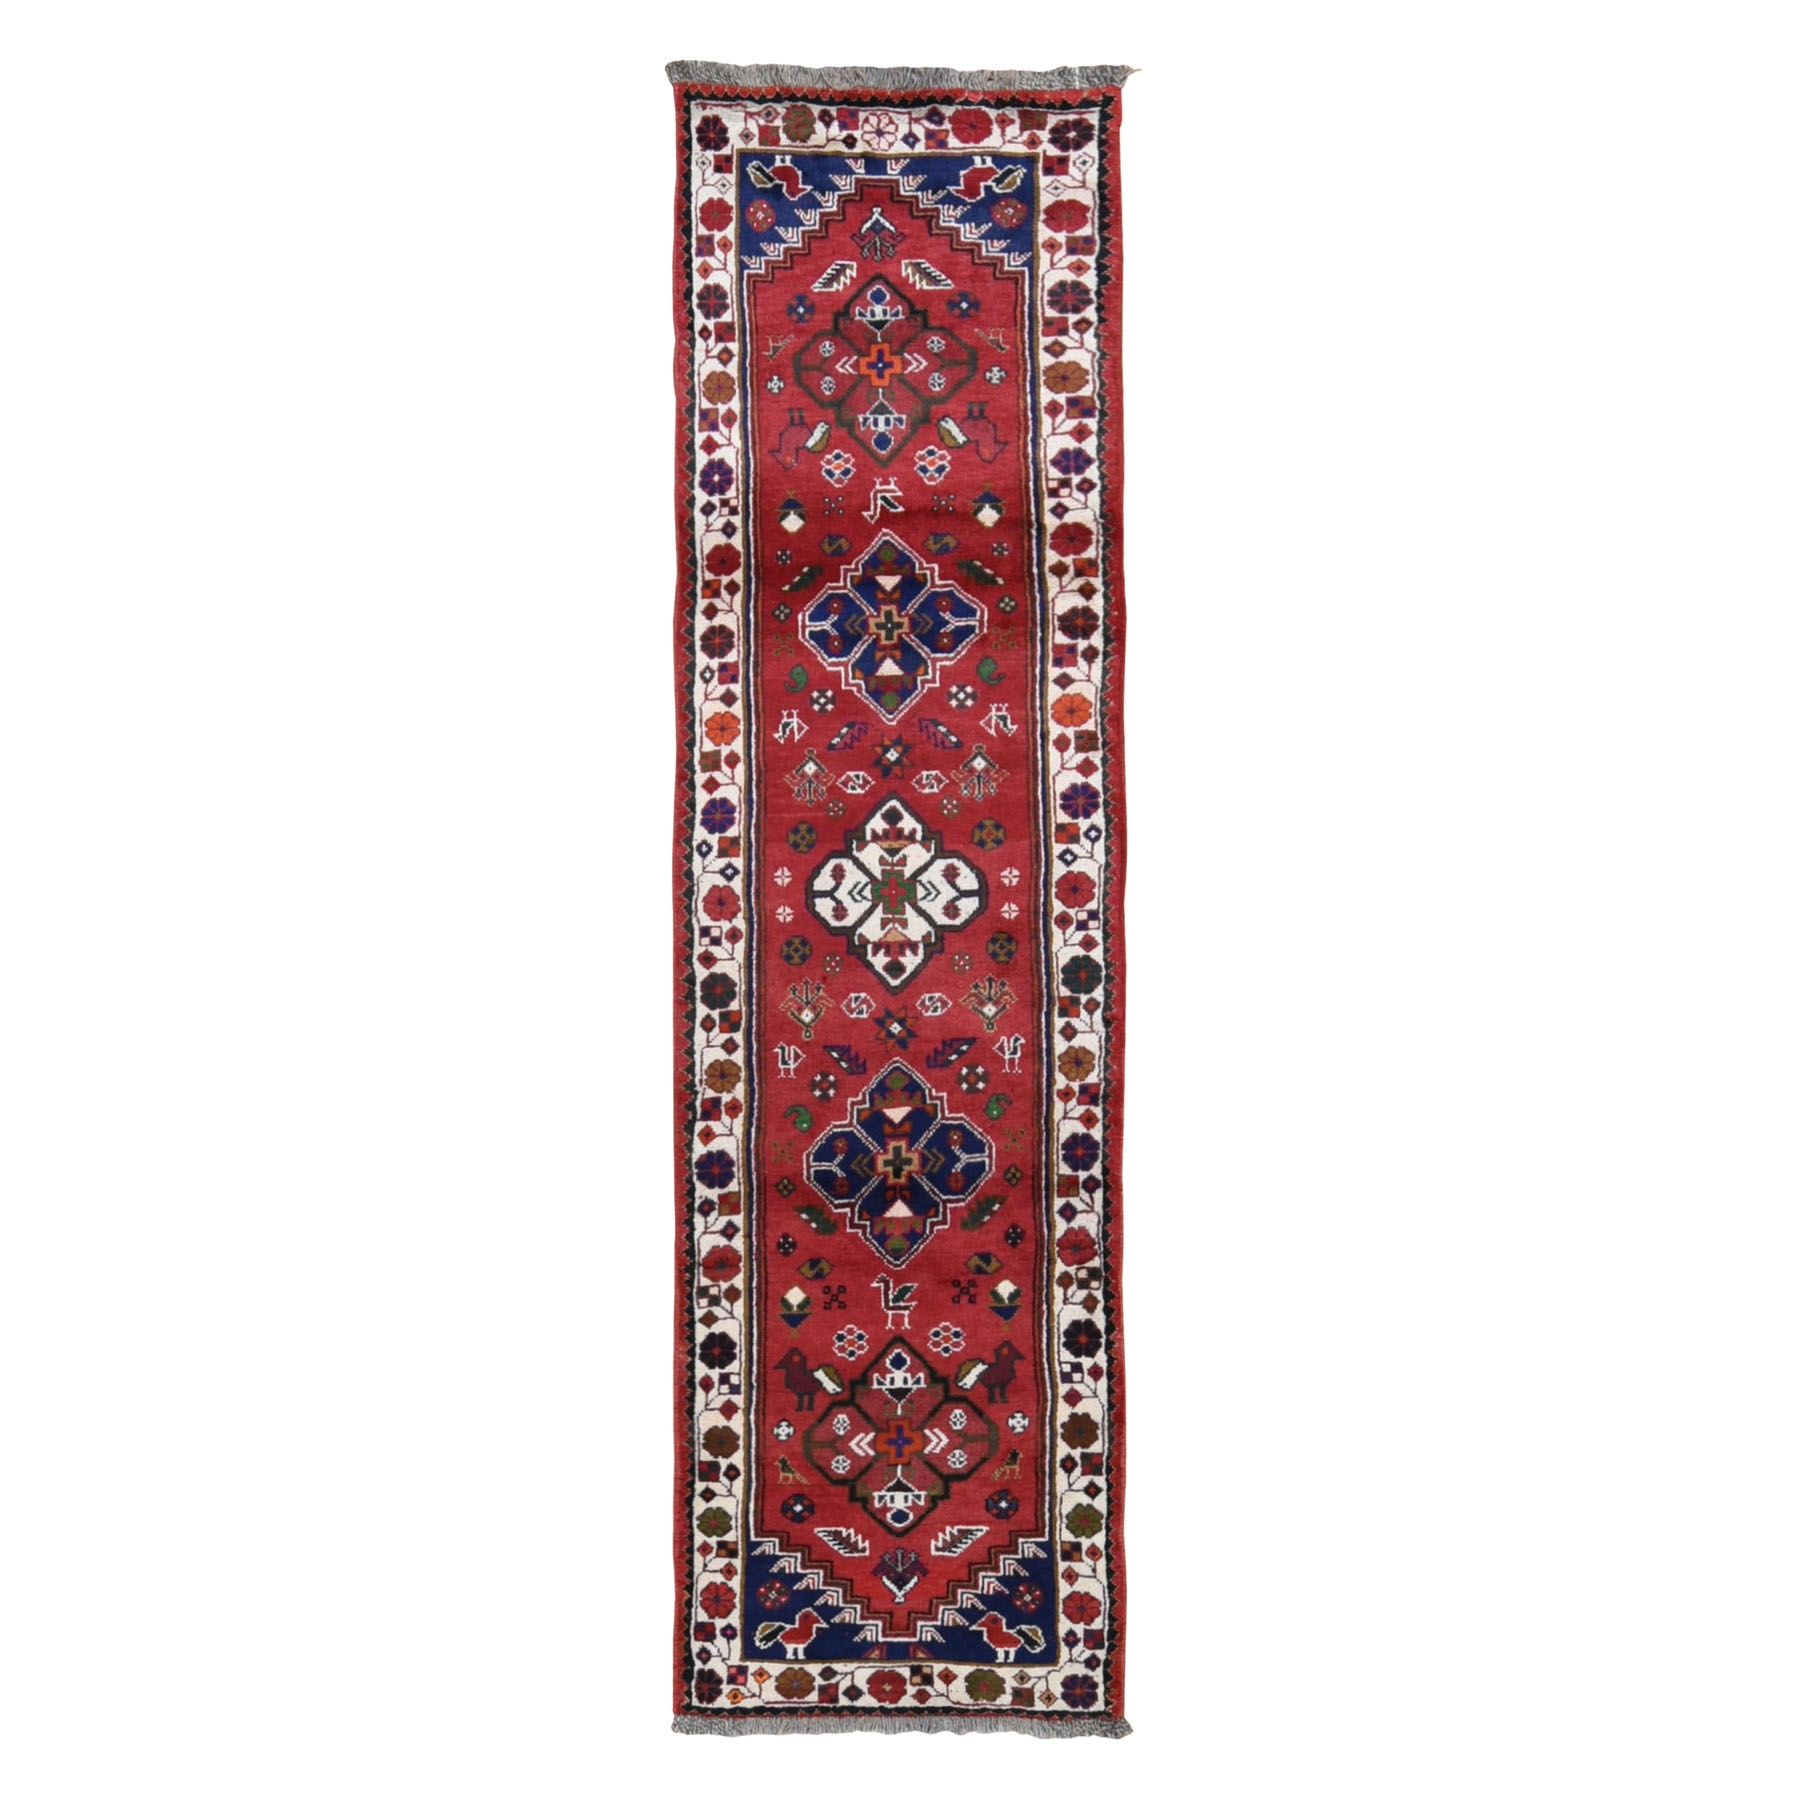 "2'5""x9'4"" Red New Persian Shiraz Pure Wool Runner Hand Woven Oriental Rug"